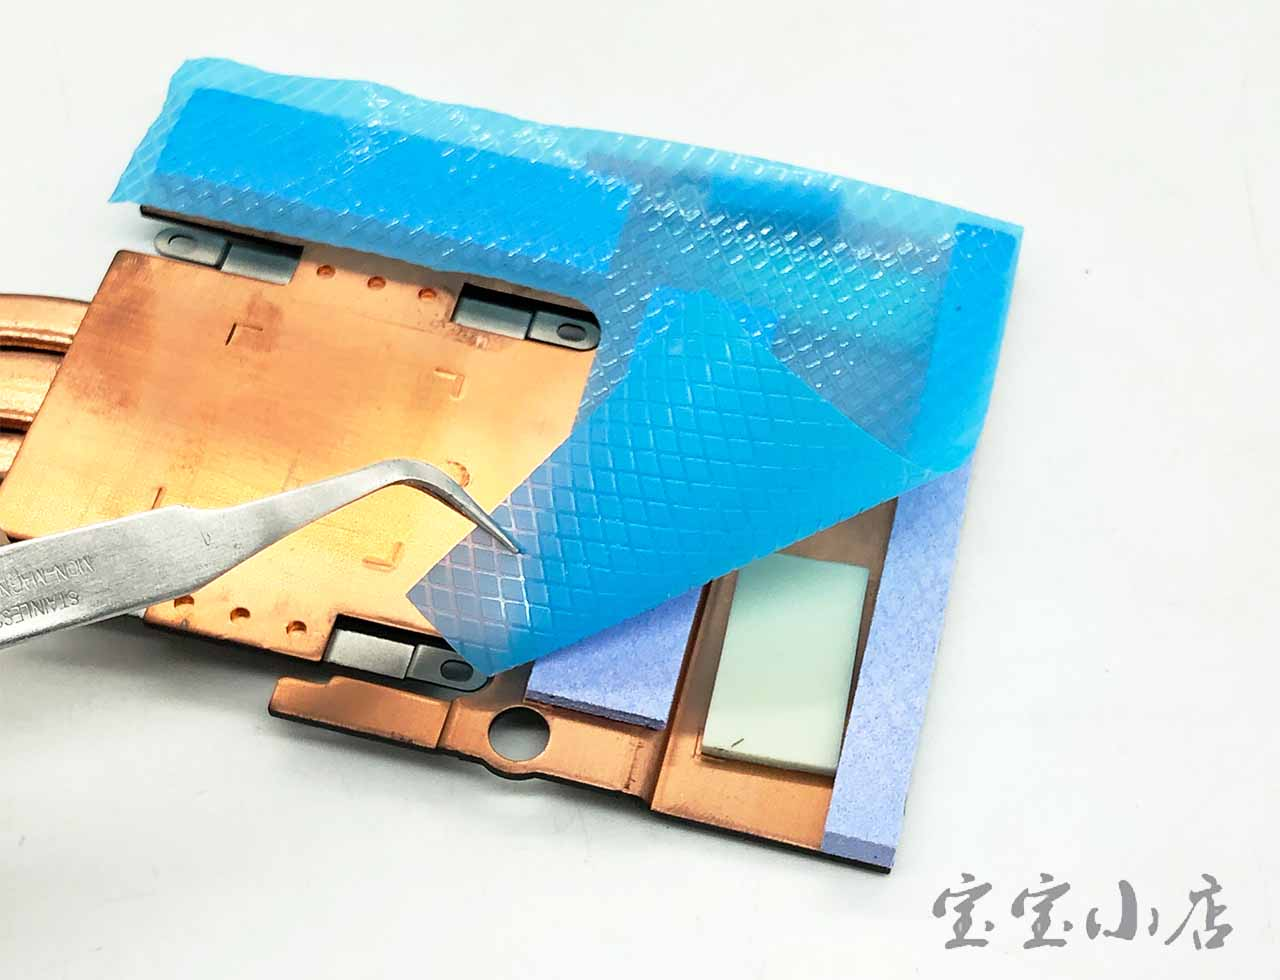 蓝天CLEVO P870 P870DM2 GPU 散热模组铜管 6-31-P870N-302 Video Graphics card Cooling radiator heatsink